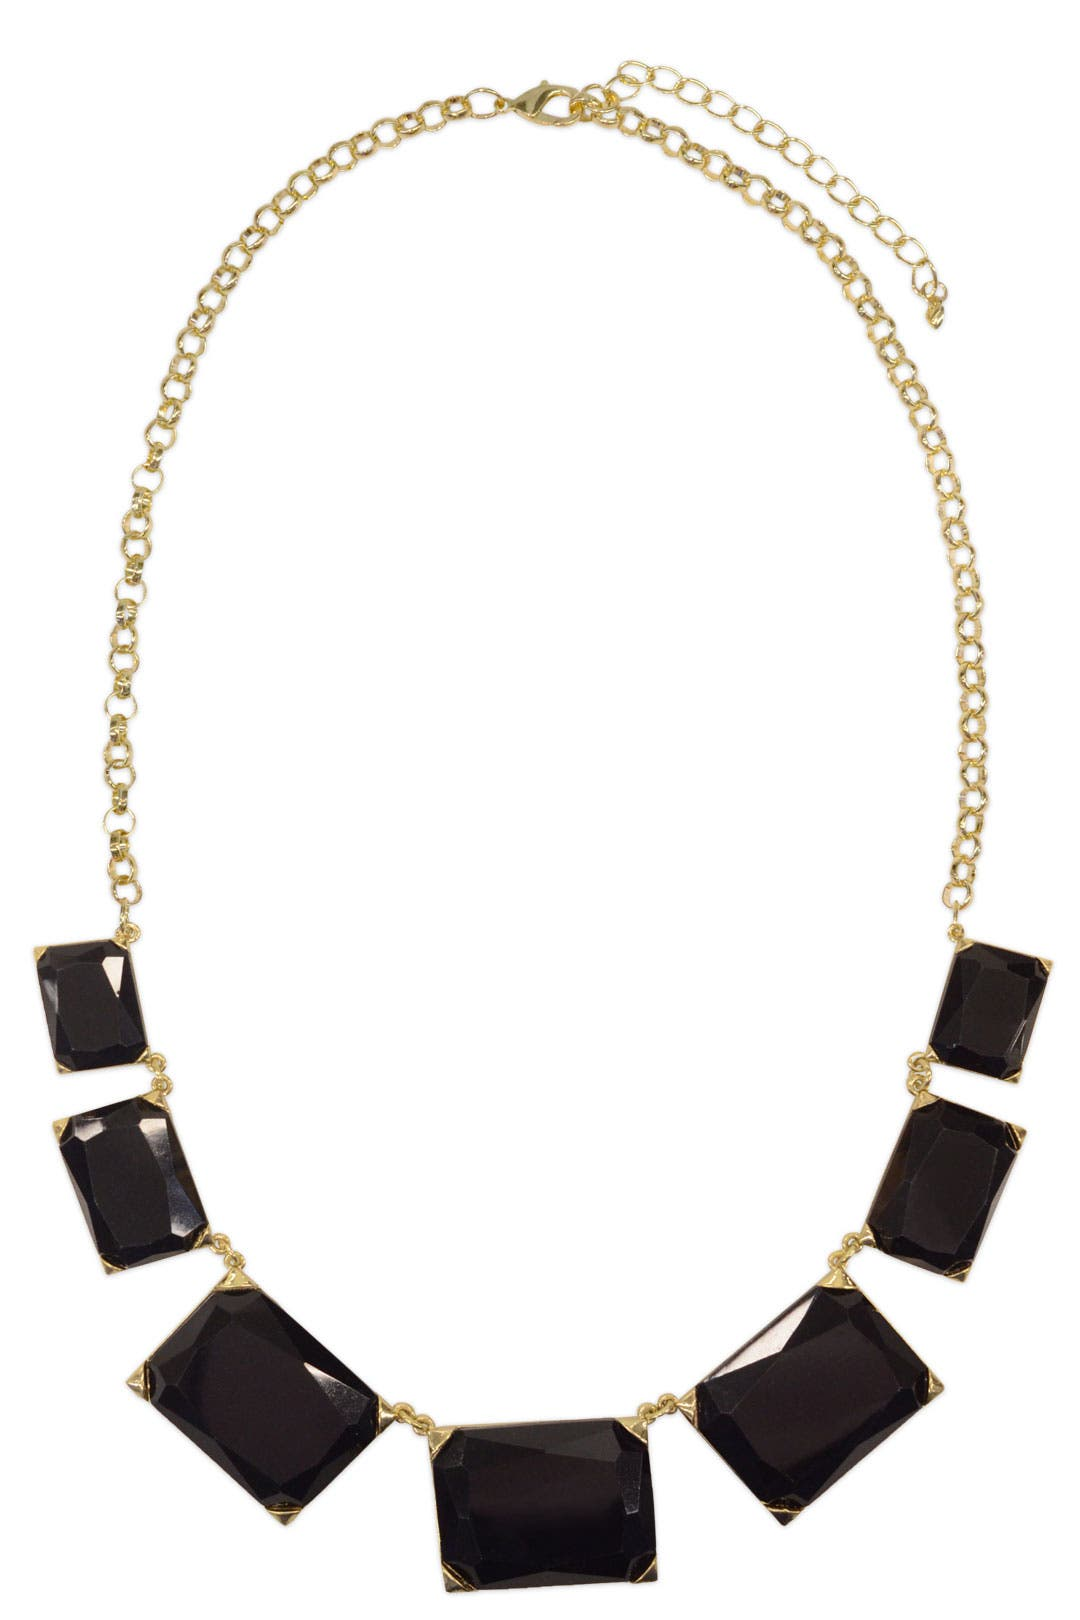 Black Squares Collar by Cinder & Charm